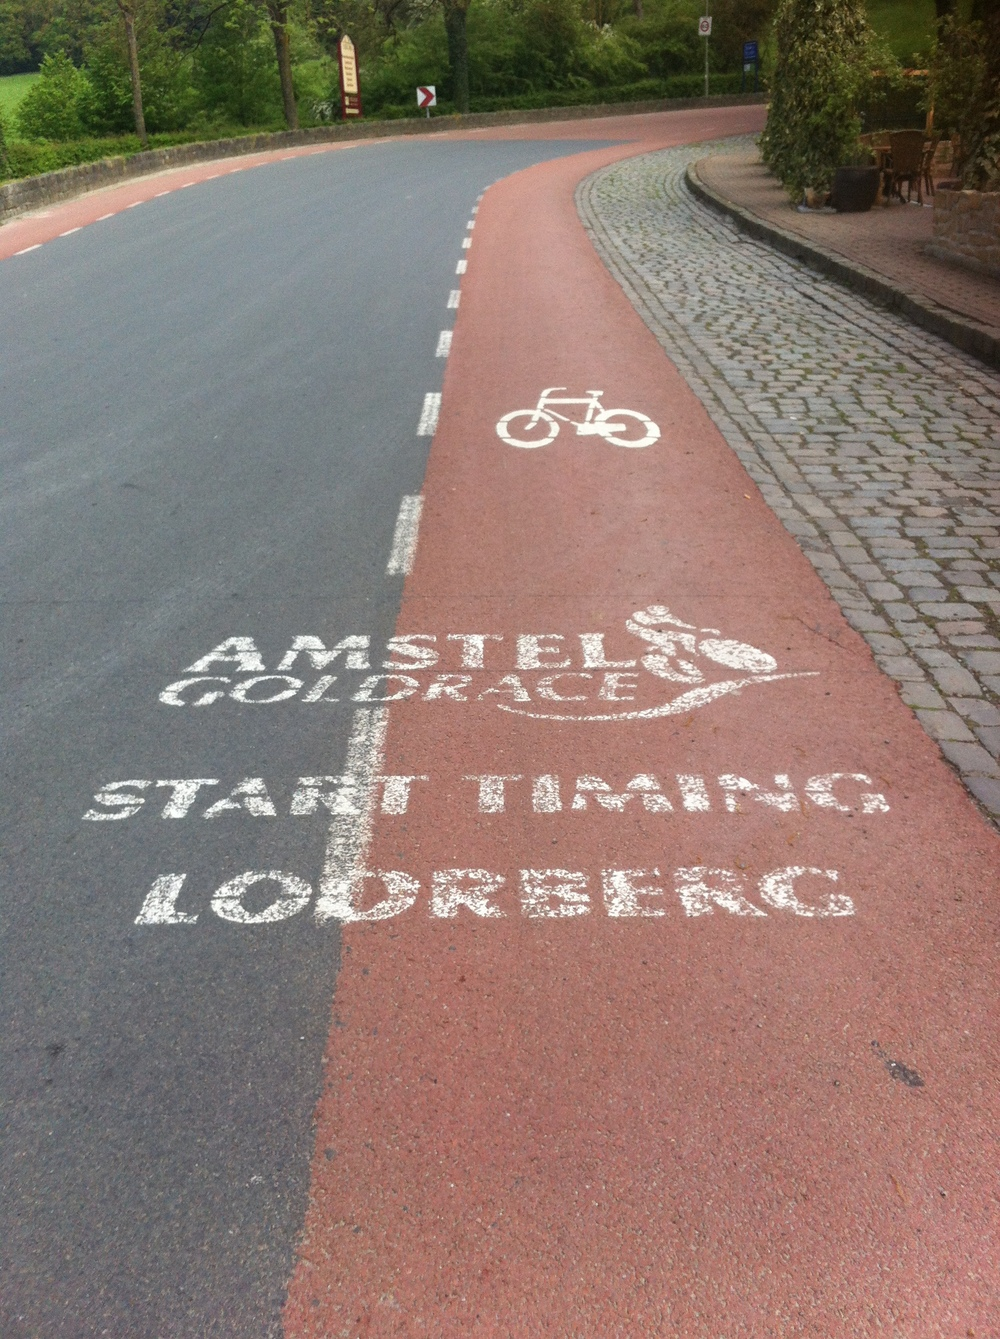 Slenaken climb used in Amstel Gold Race